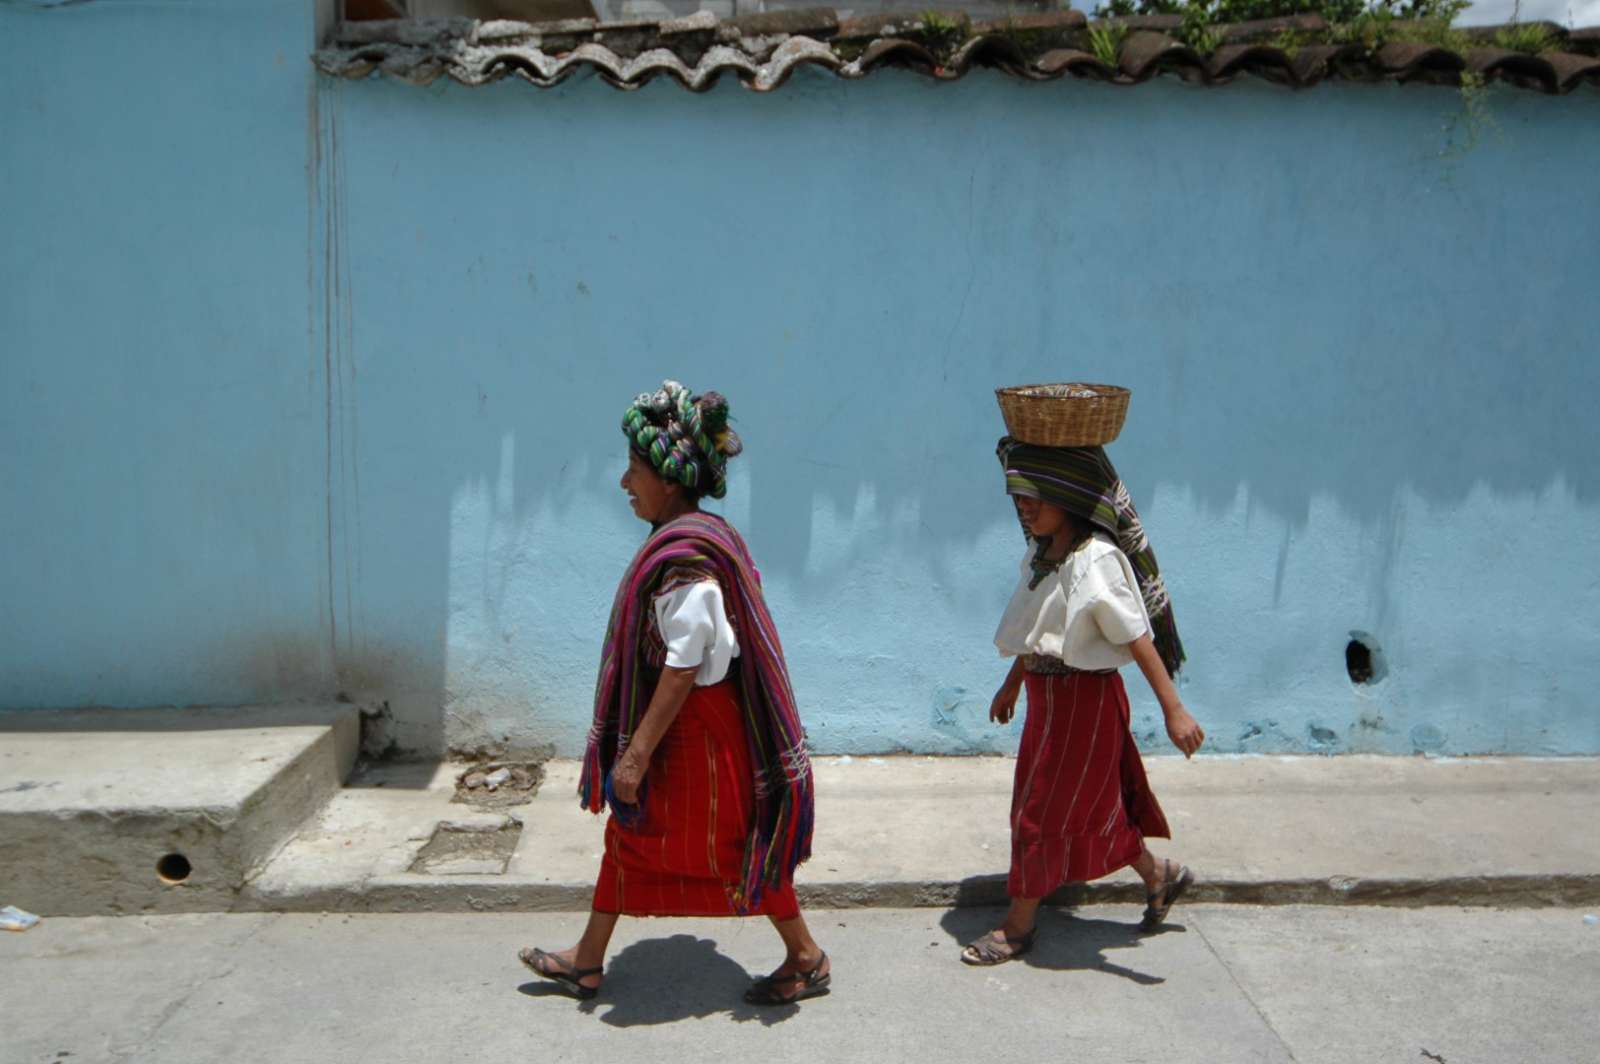 Mayan women in the Ixil Triangle of Guatemala